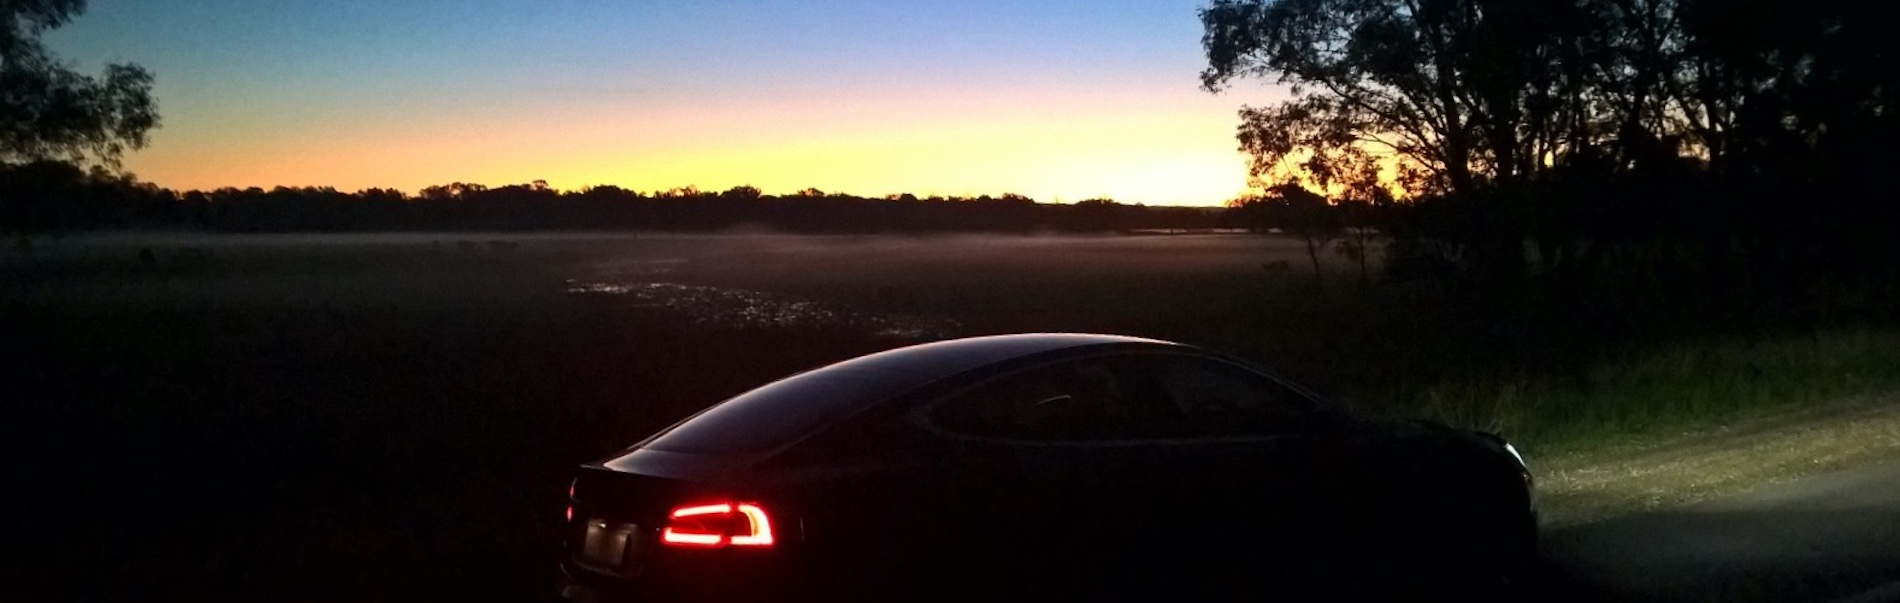 Tesla Owners Club of Australia - Sunset